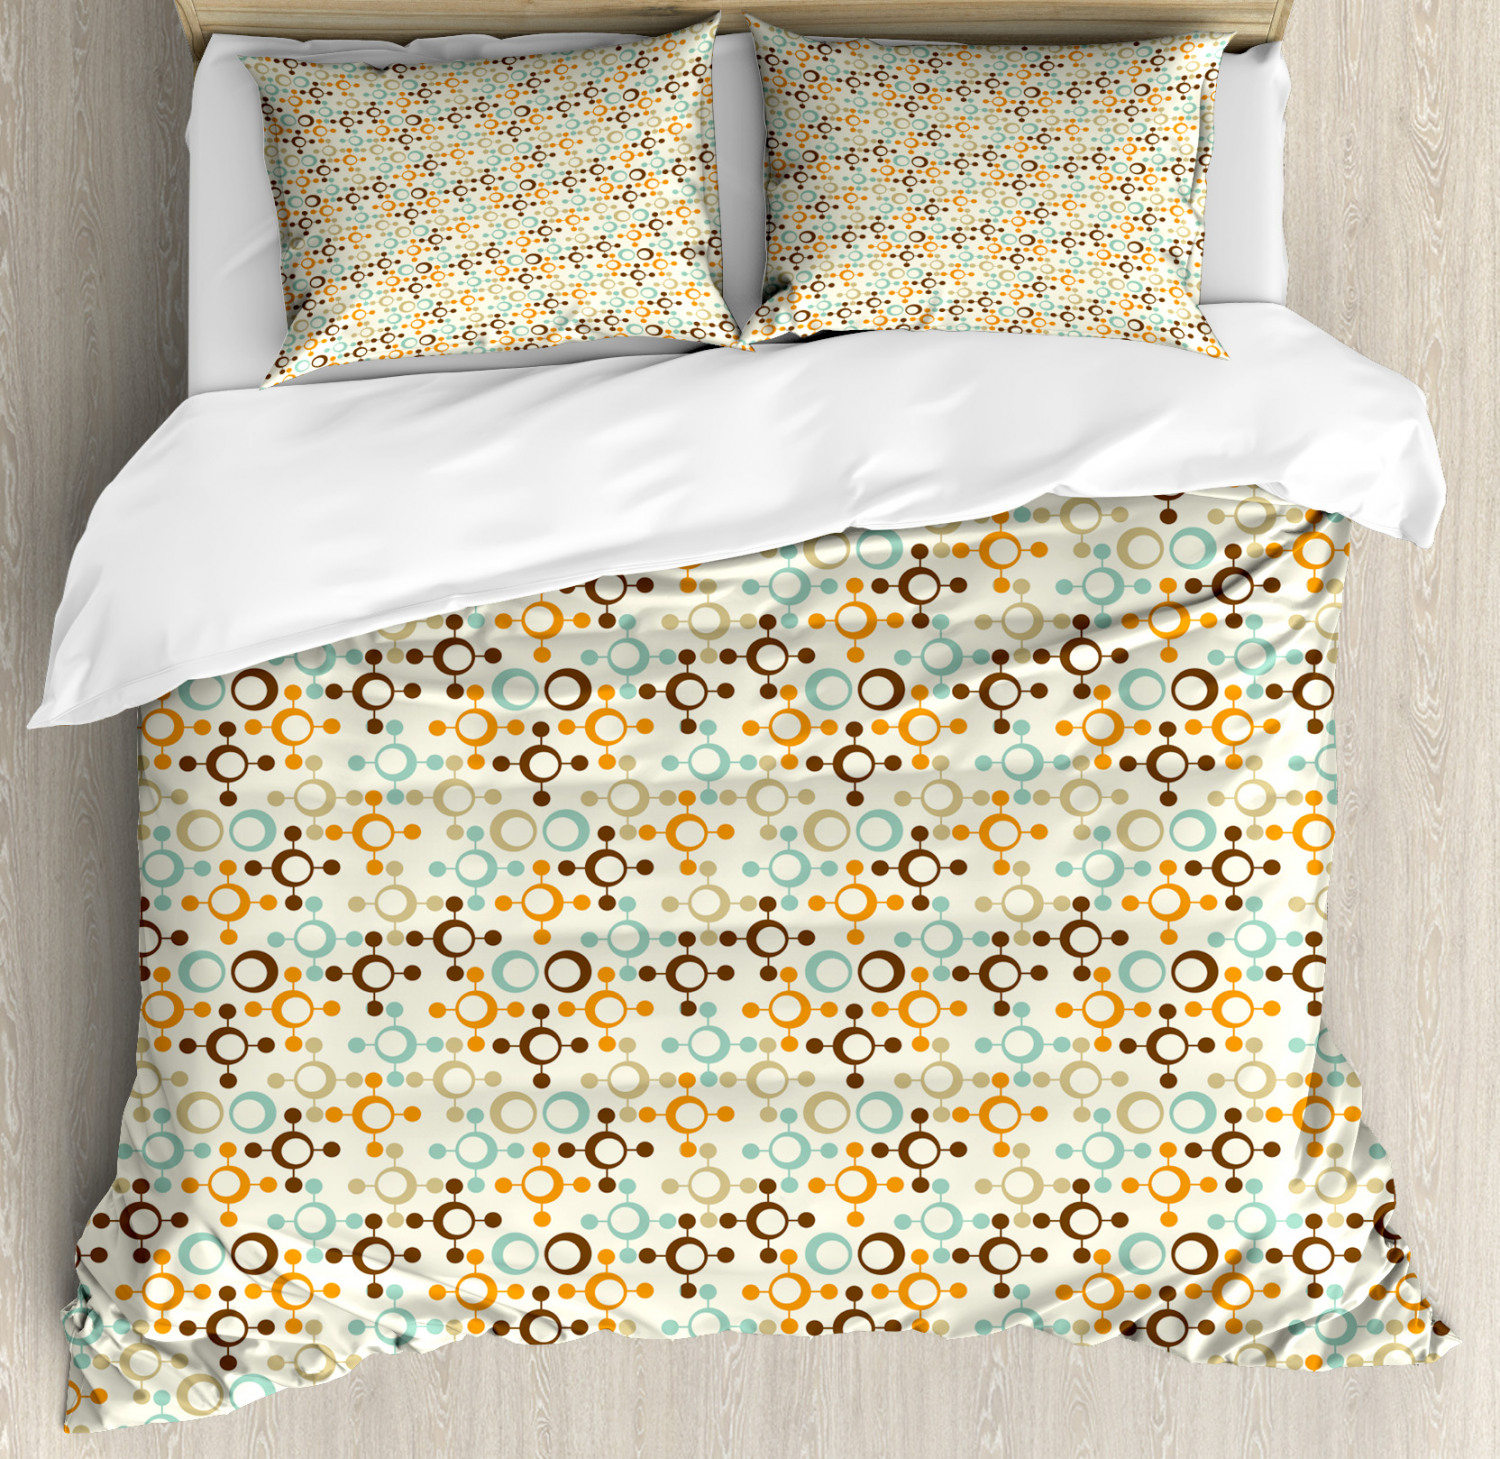 Abstract Duvet Cover Set with Pillow Shams Funky Molecule Like Print